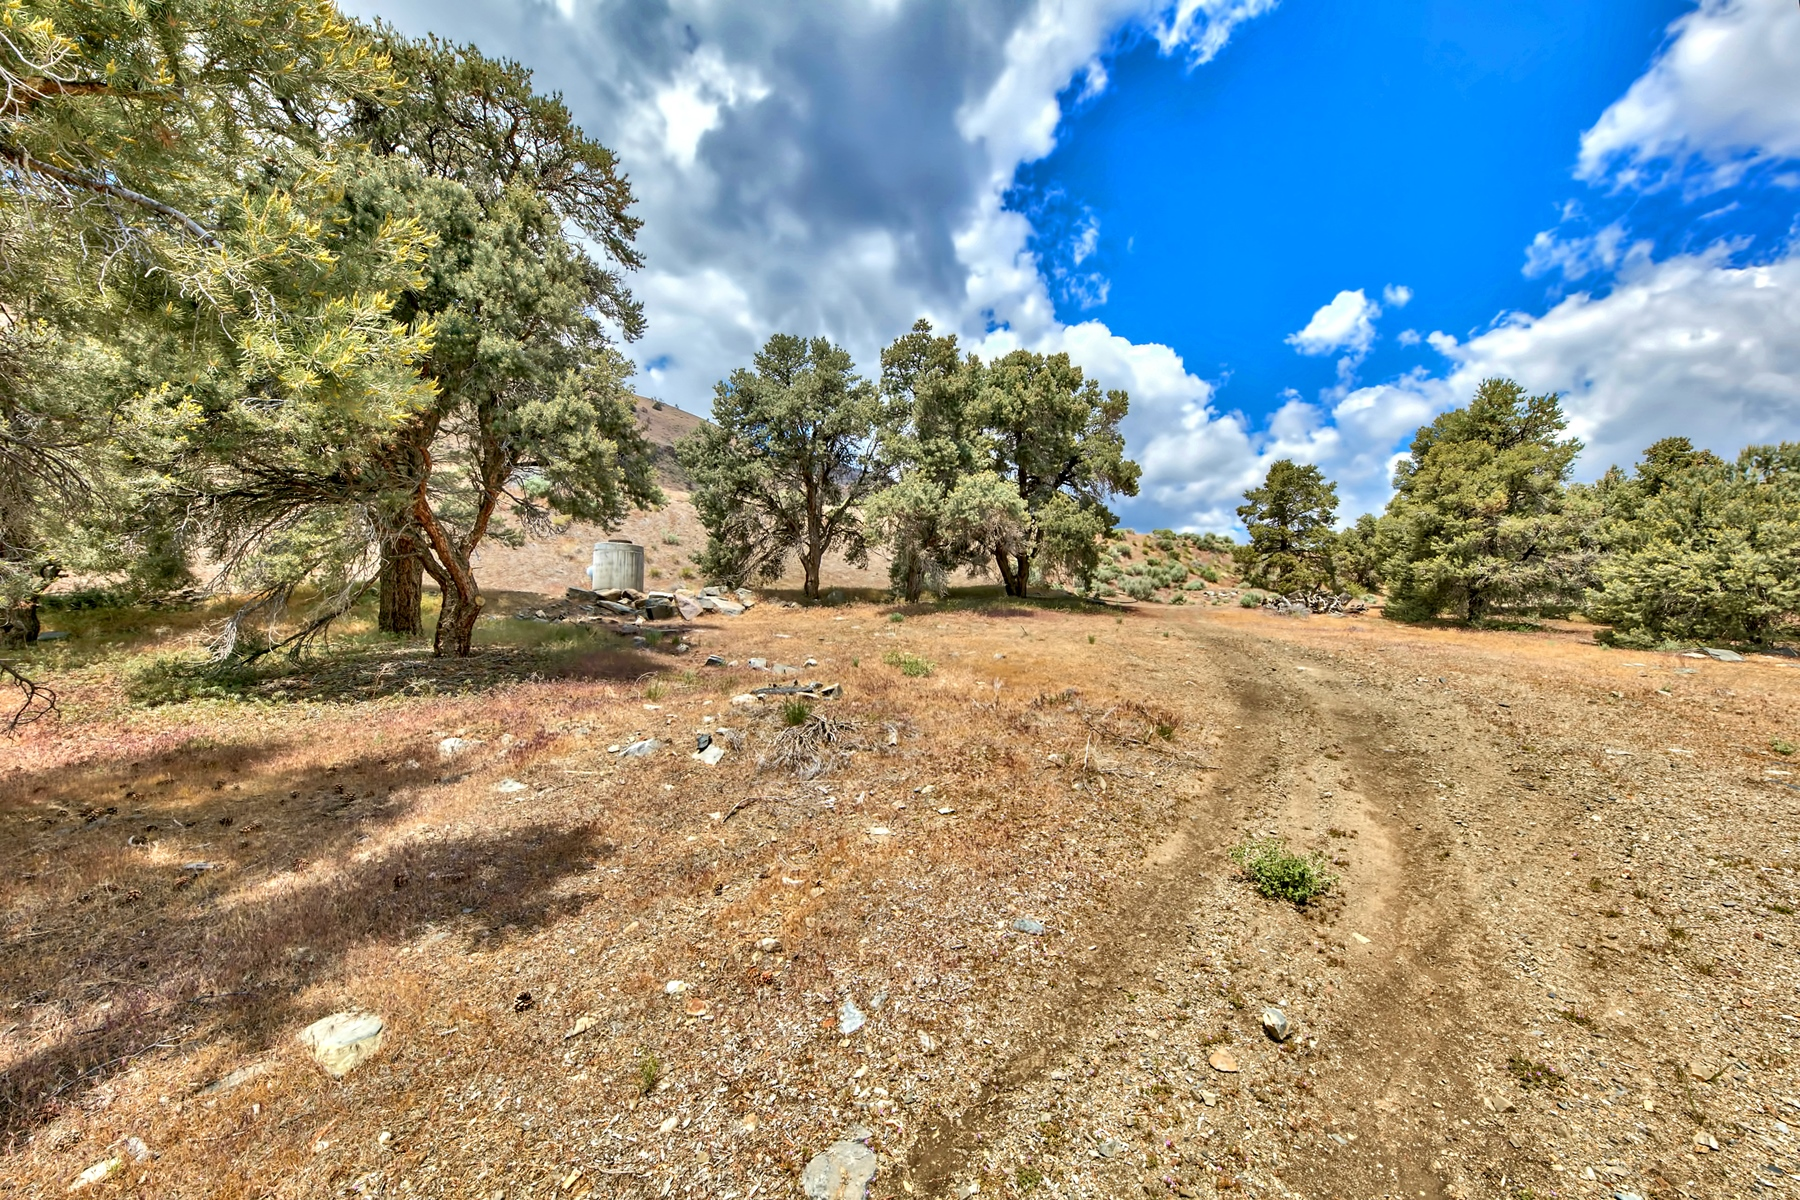 Additional photo for property listing at 2059 Hwy 395 South, Garnerville, NV 89410 2059 S HWY 395 加登维尔, 内华达州 89410 美国